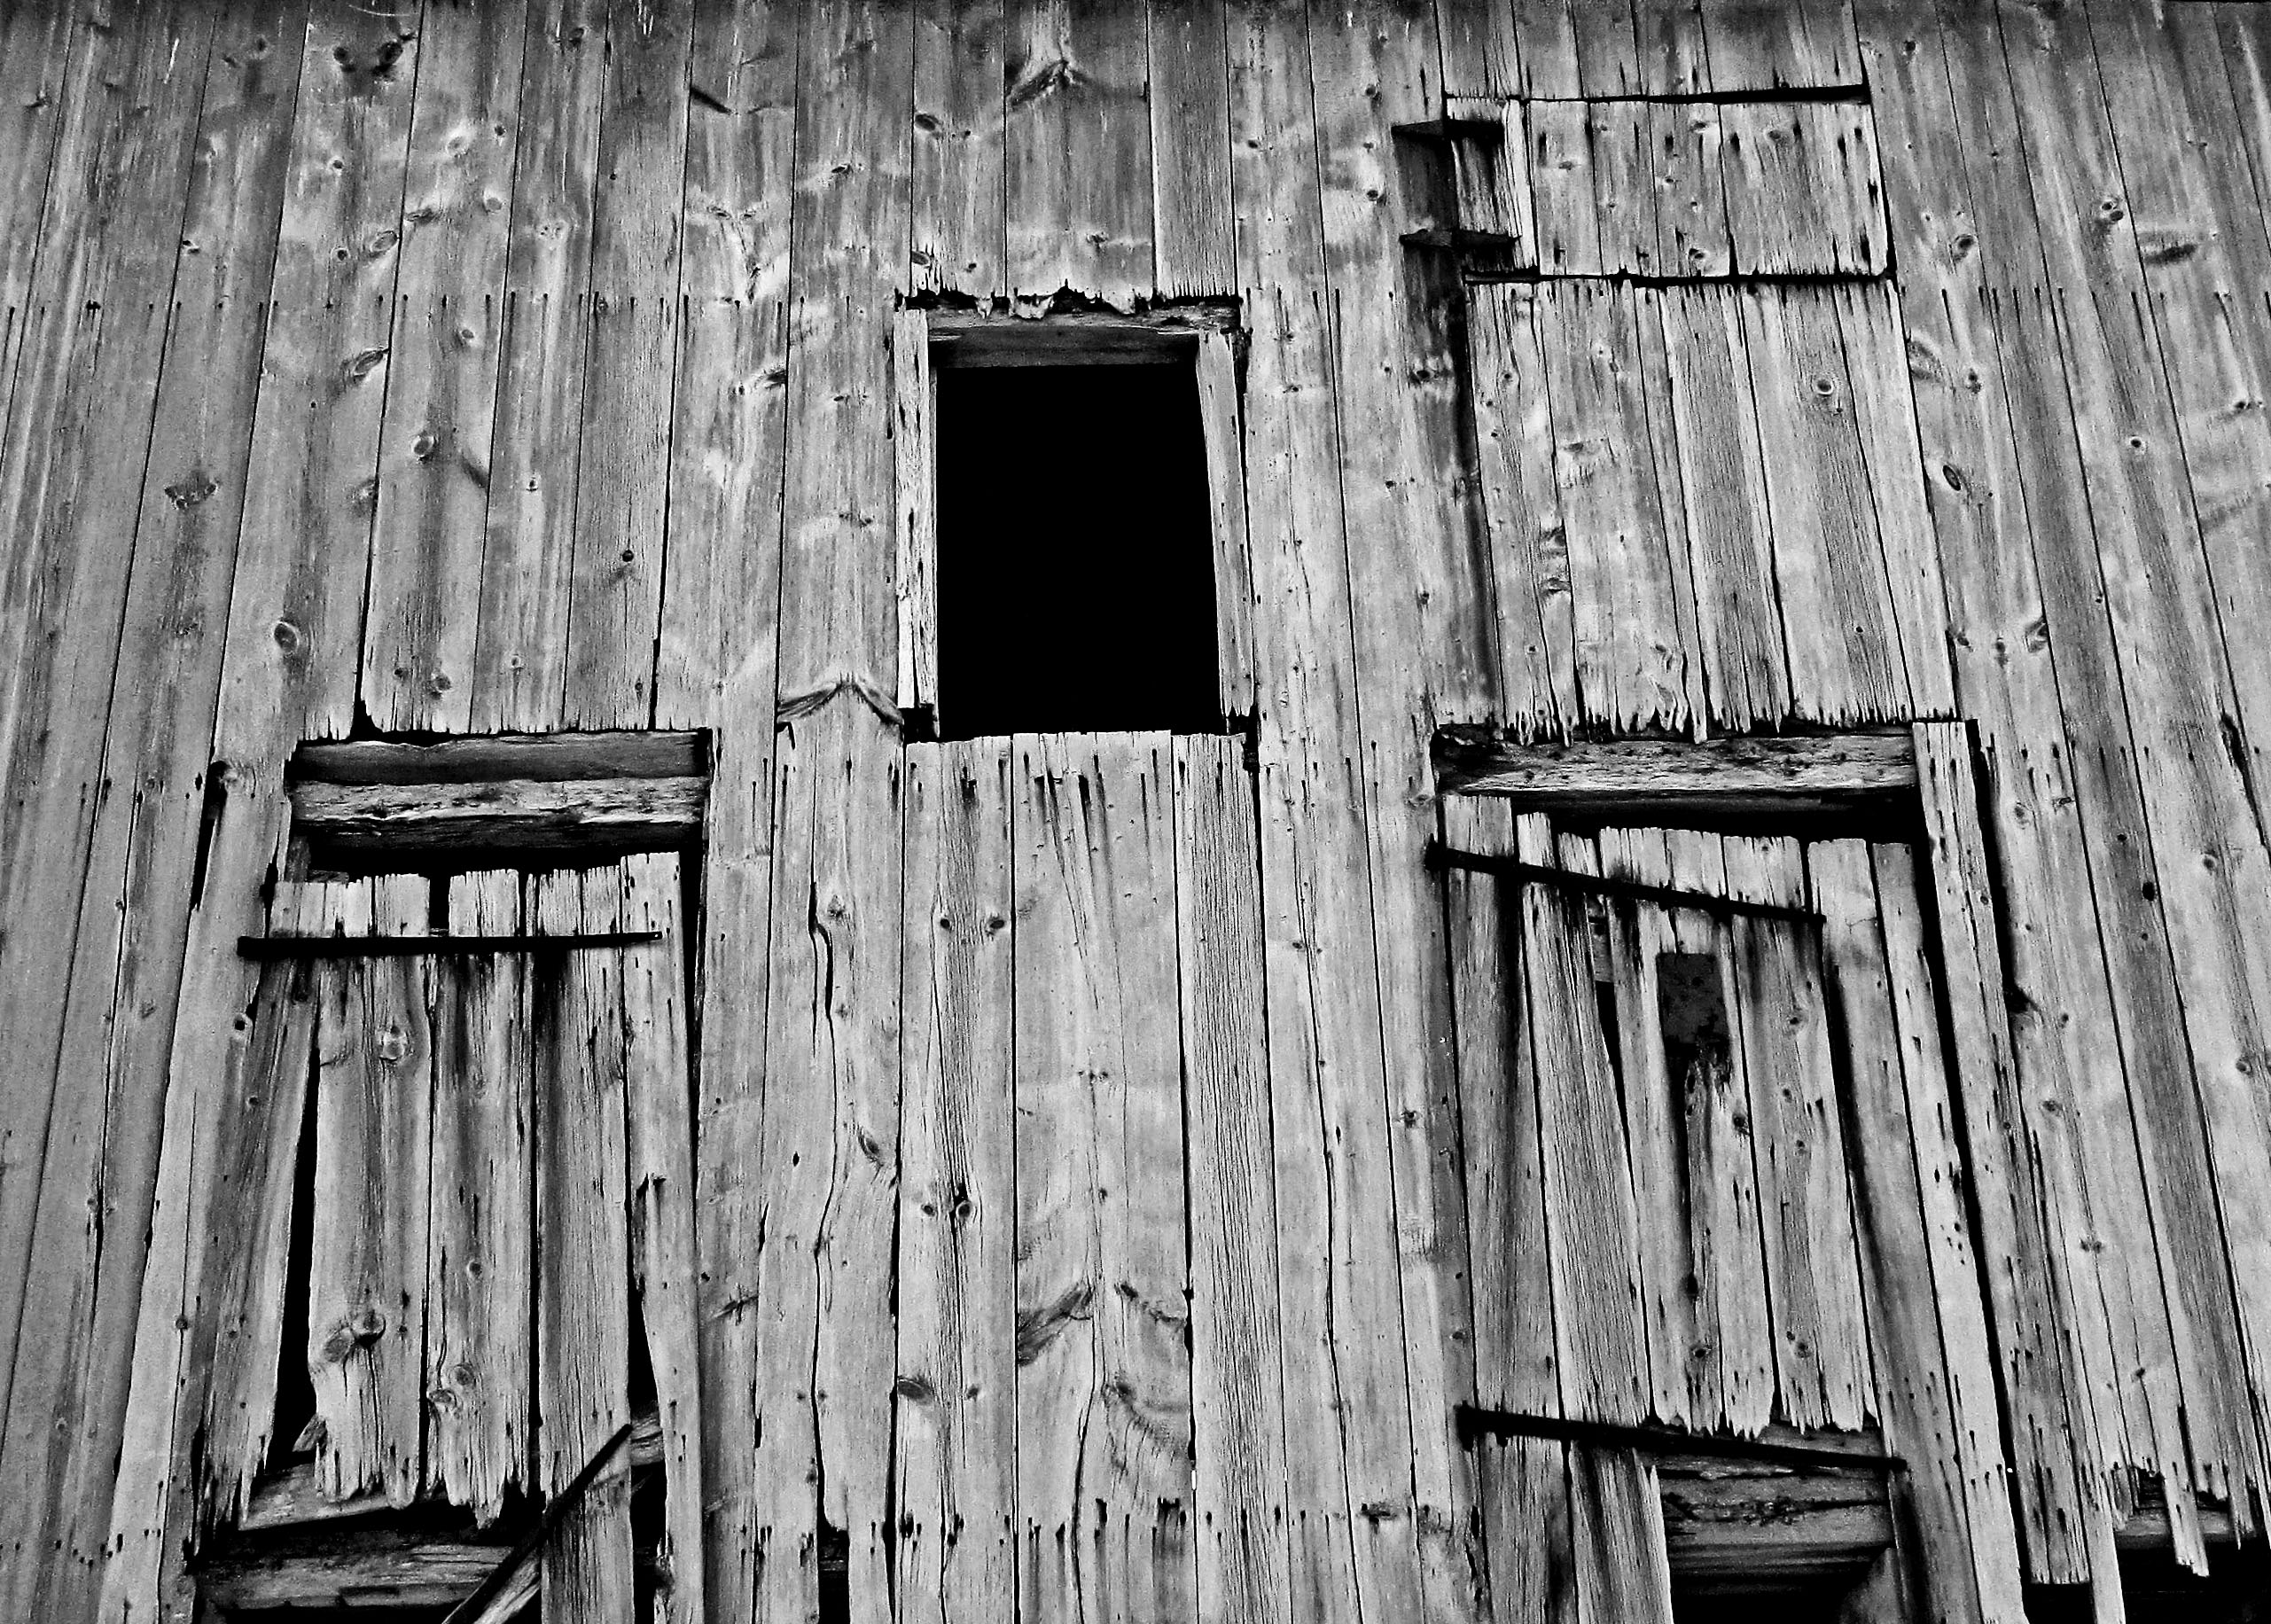 Decaying Wood Planks & Doors On The Side Of Old Barn - Love's ...